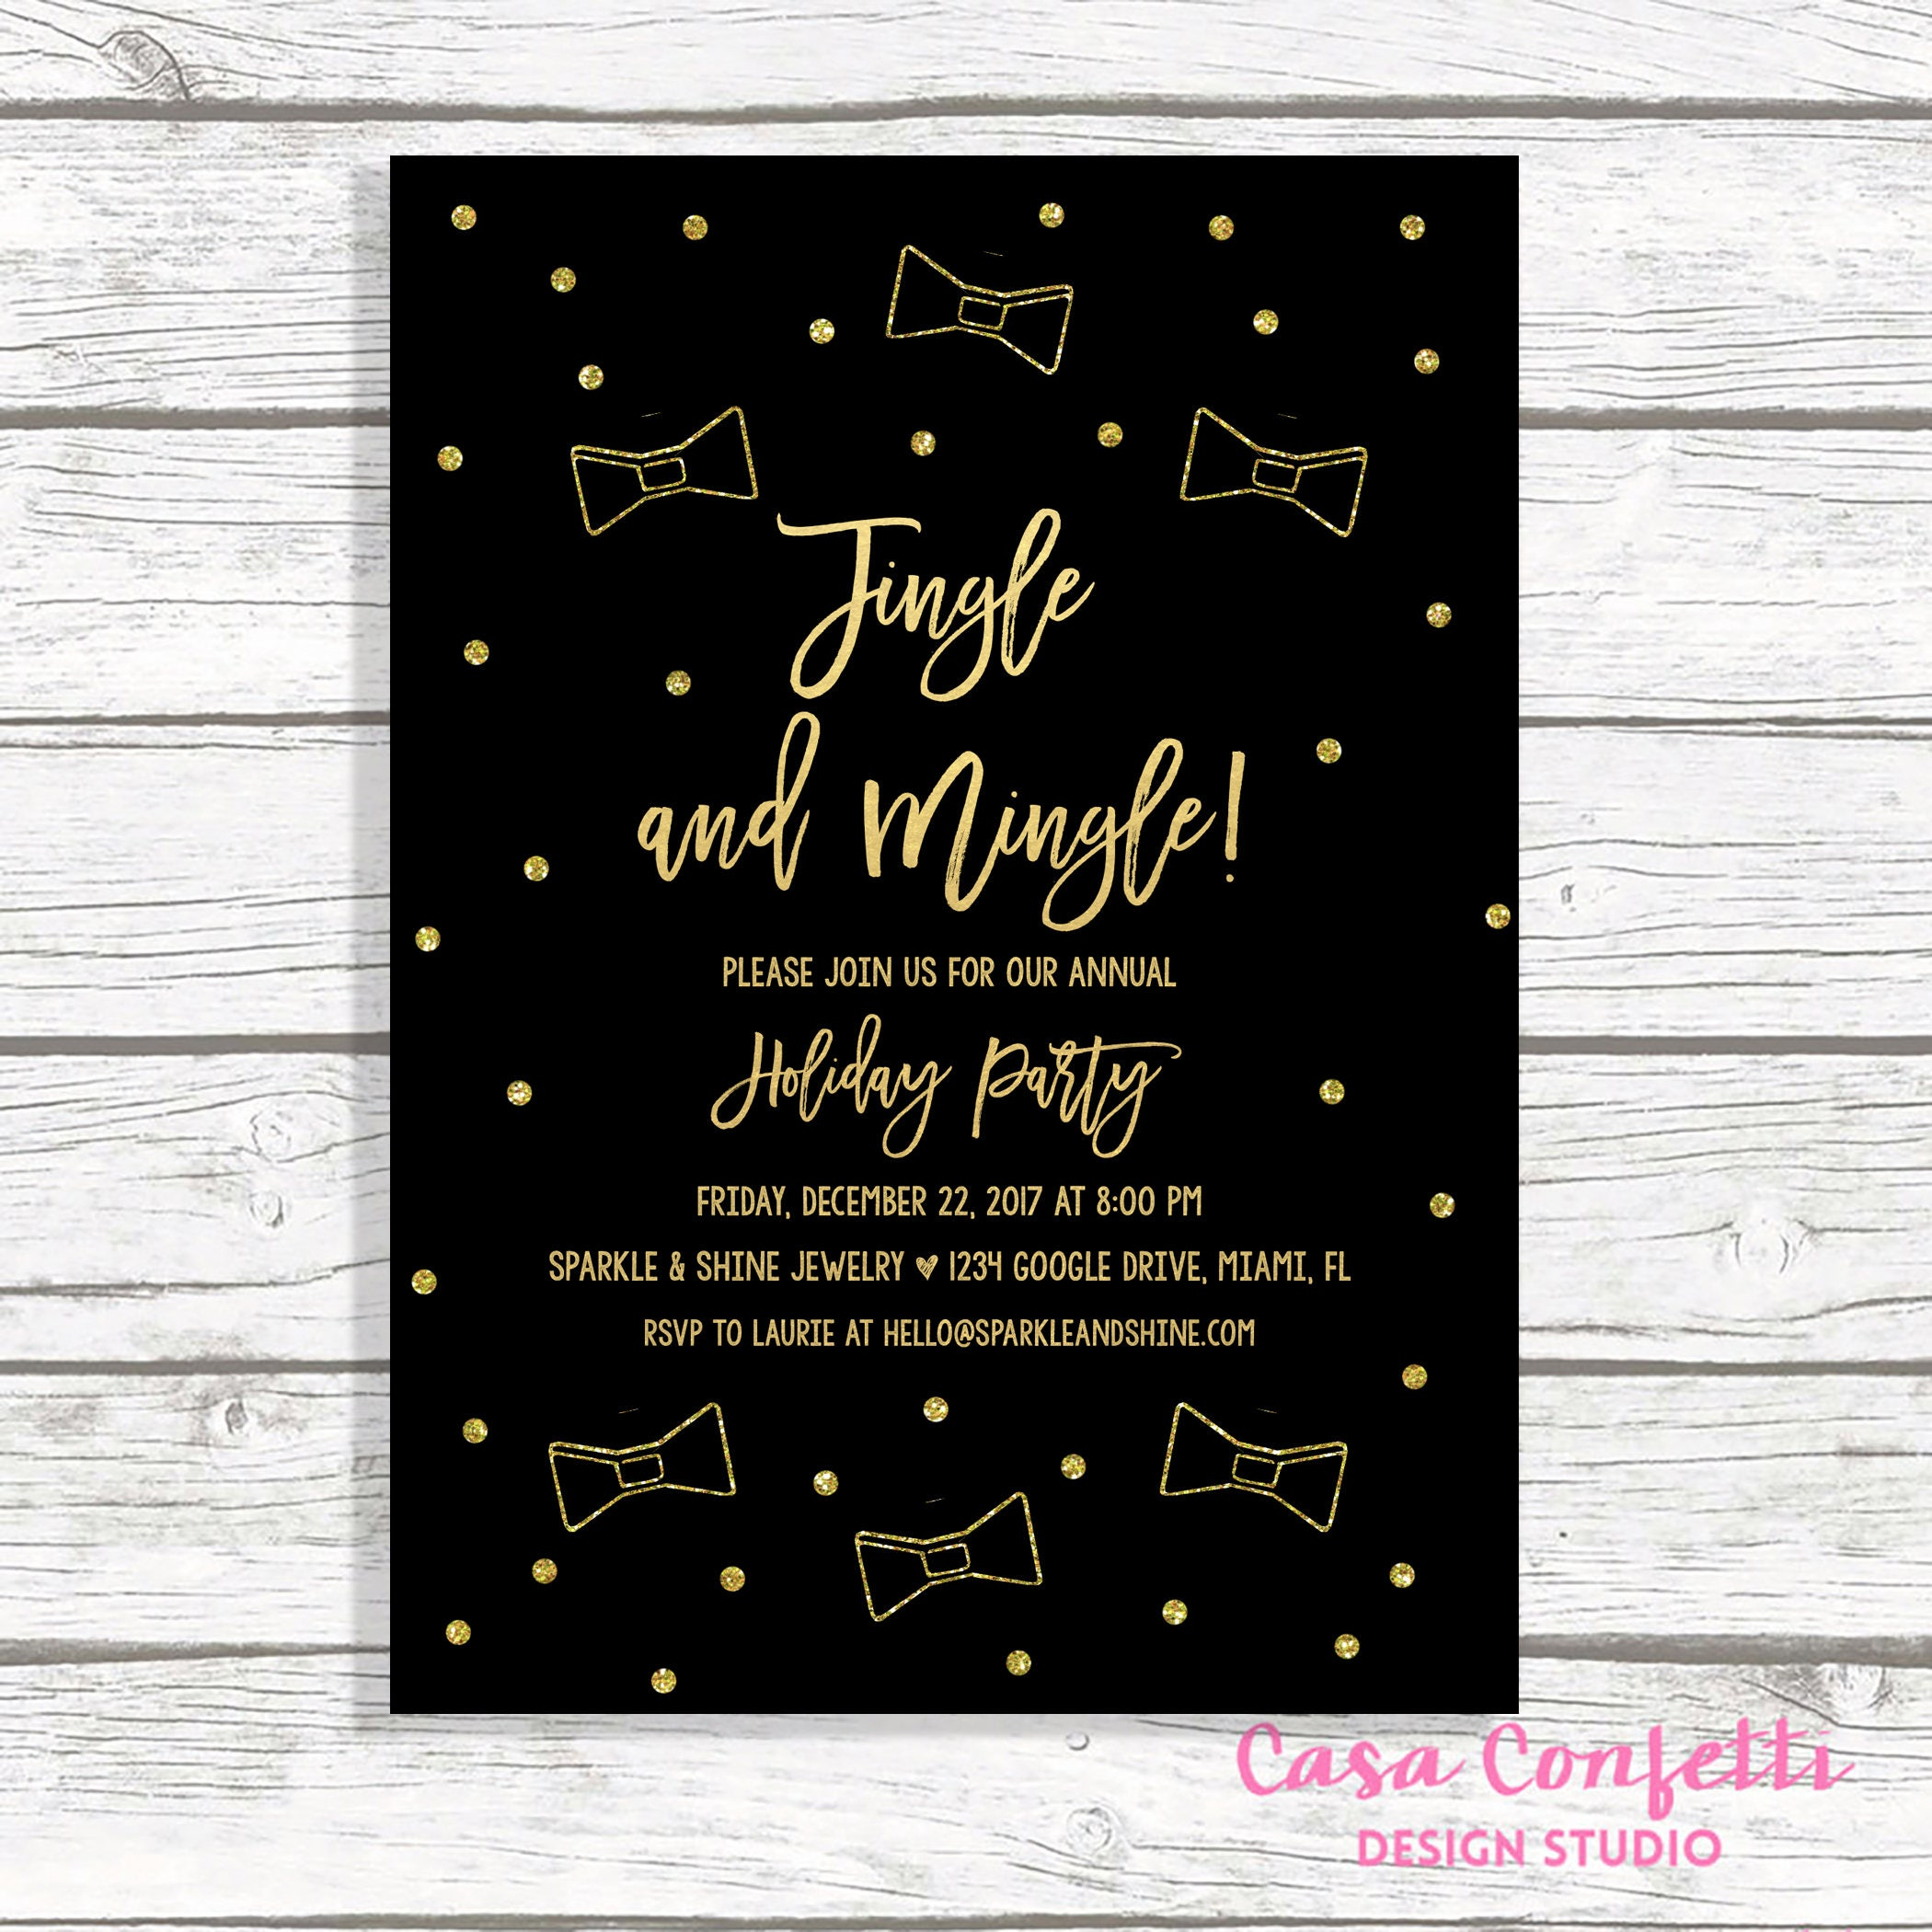 Office Christmas Party Invitation.Office Holiday Party Invitation Jingle And Mingle Invitations